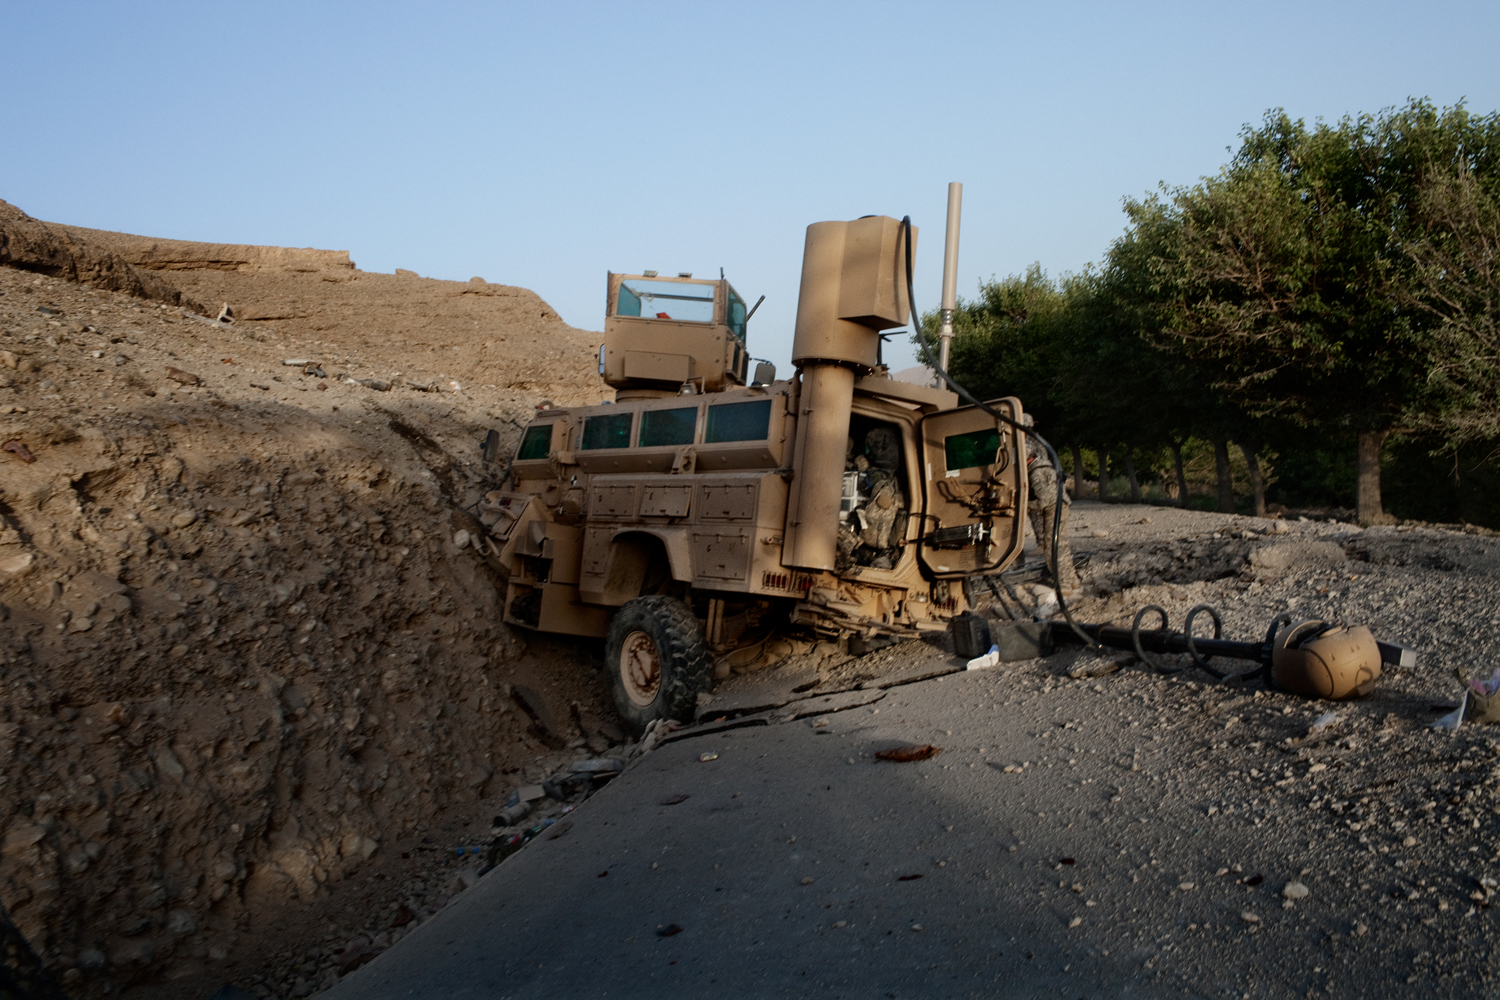 A Mine Resistant Ambush Protected Vehicle sits on the road after being attacked by an improvised explosive device in the Tangi Valley, Wardak Province, Afghanistan.